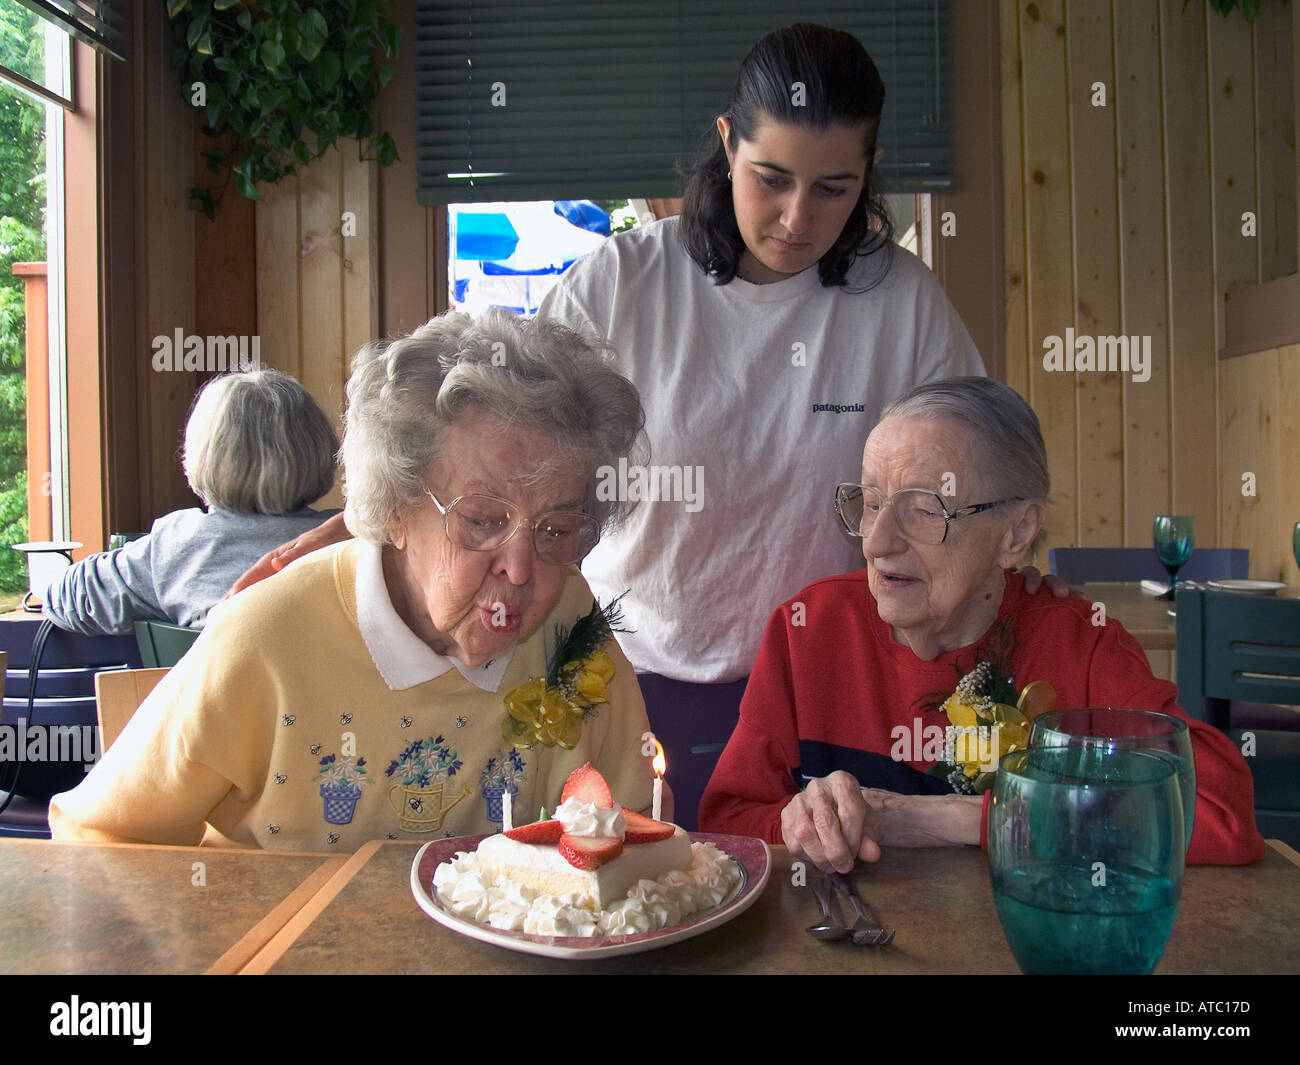 90 Year Old Woman Blows Out Birthday Candle On Cake As 88 Partner And Mid 30 Niece Watch